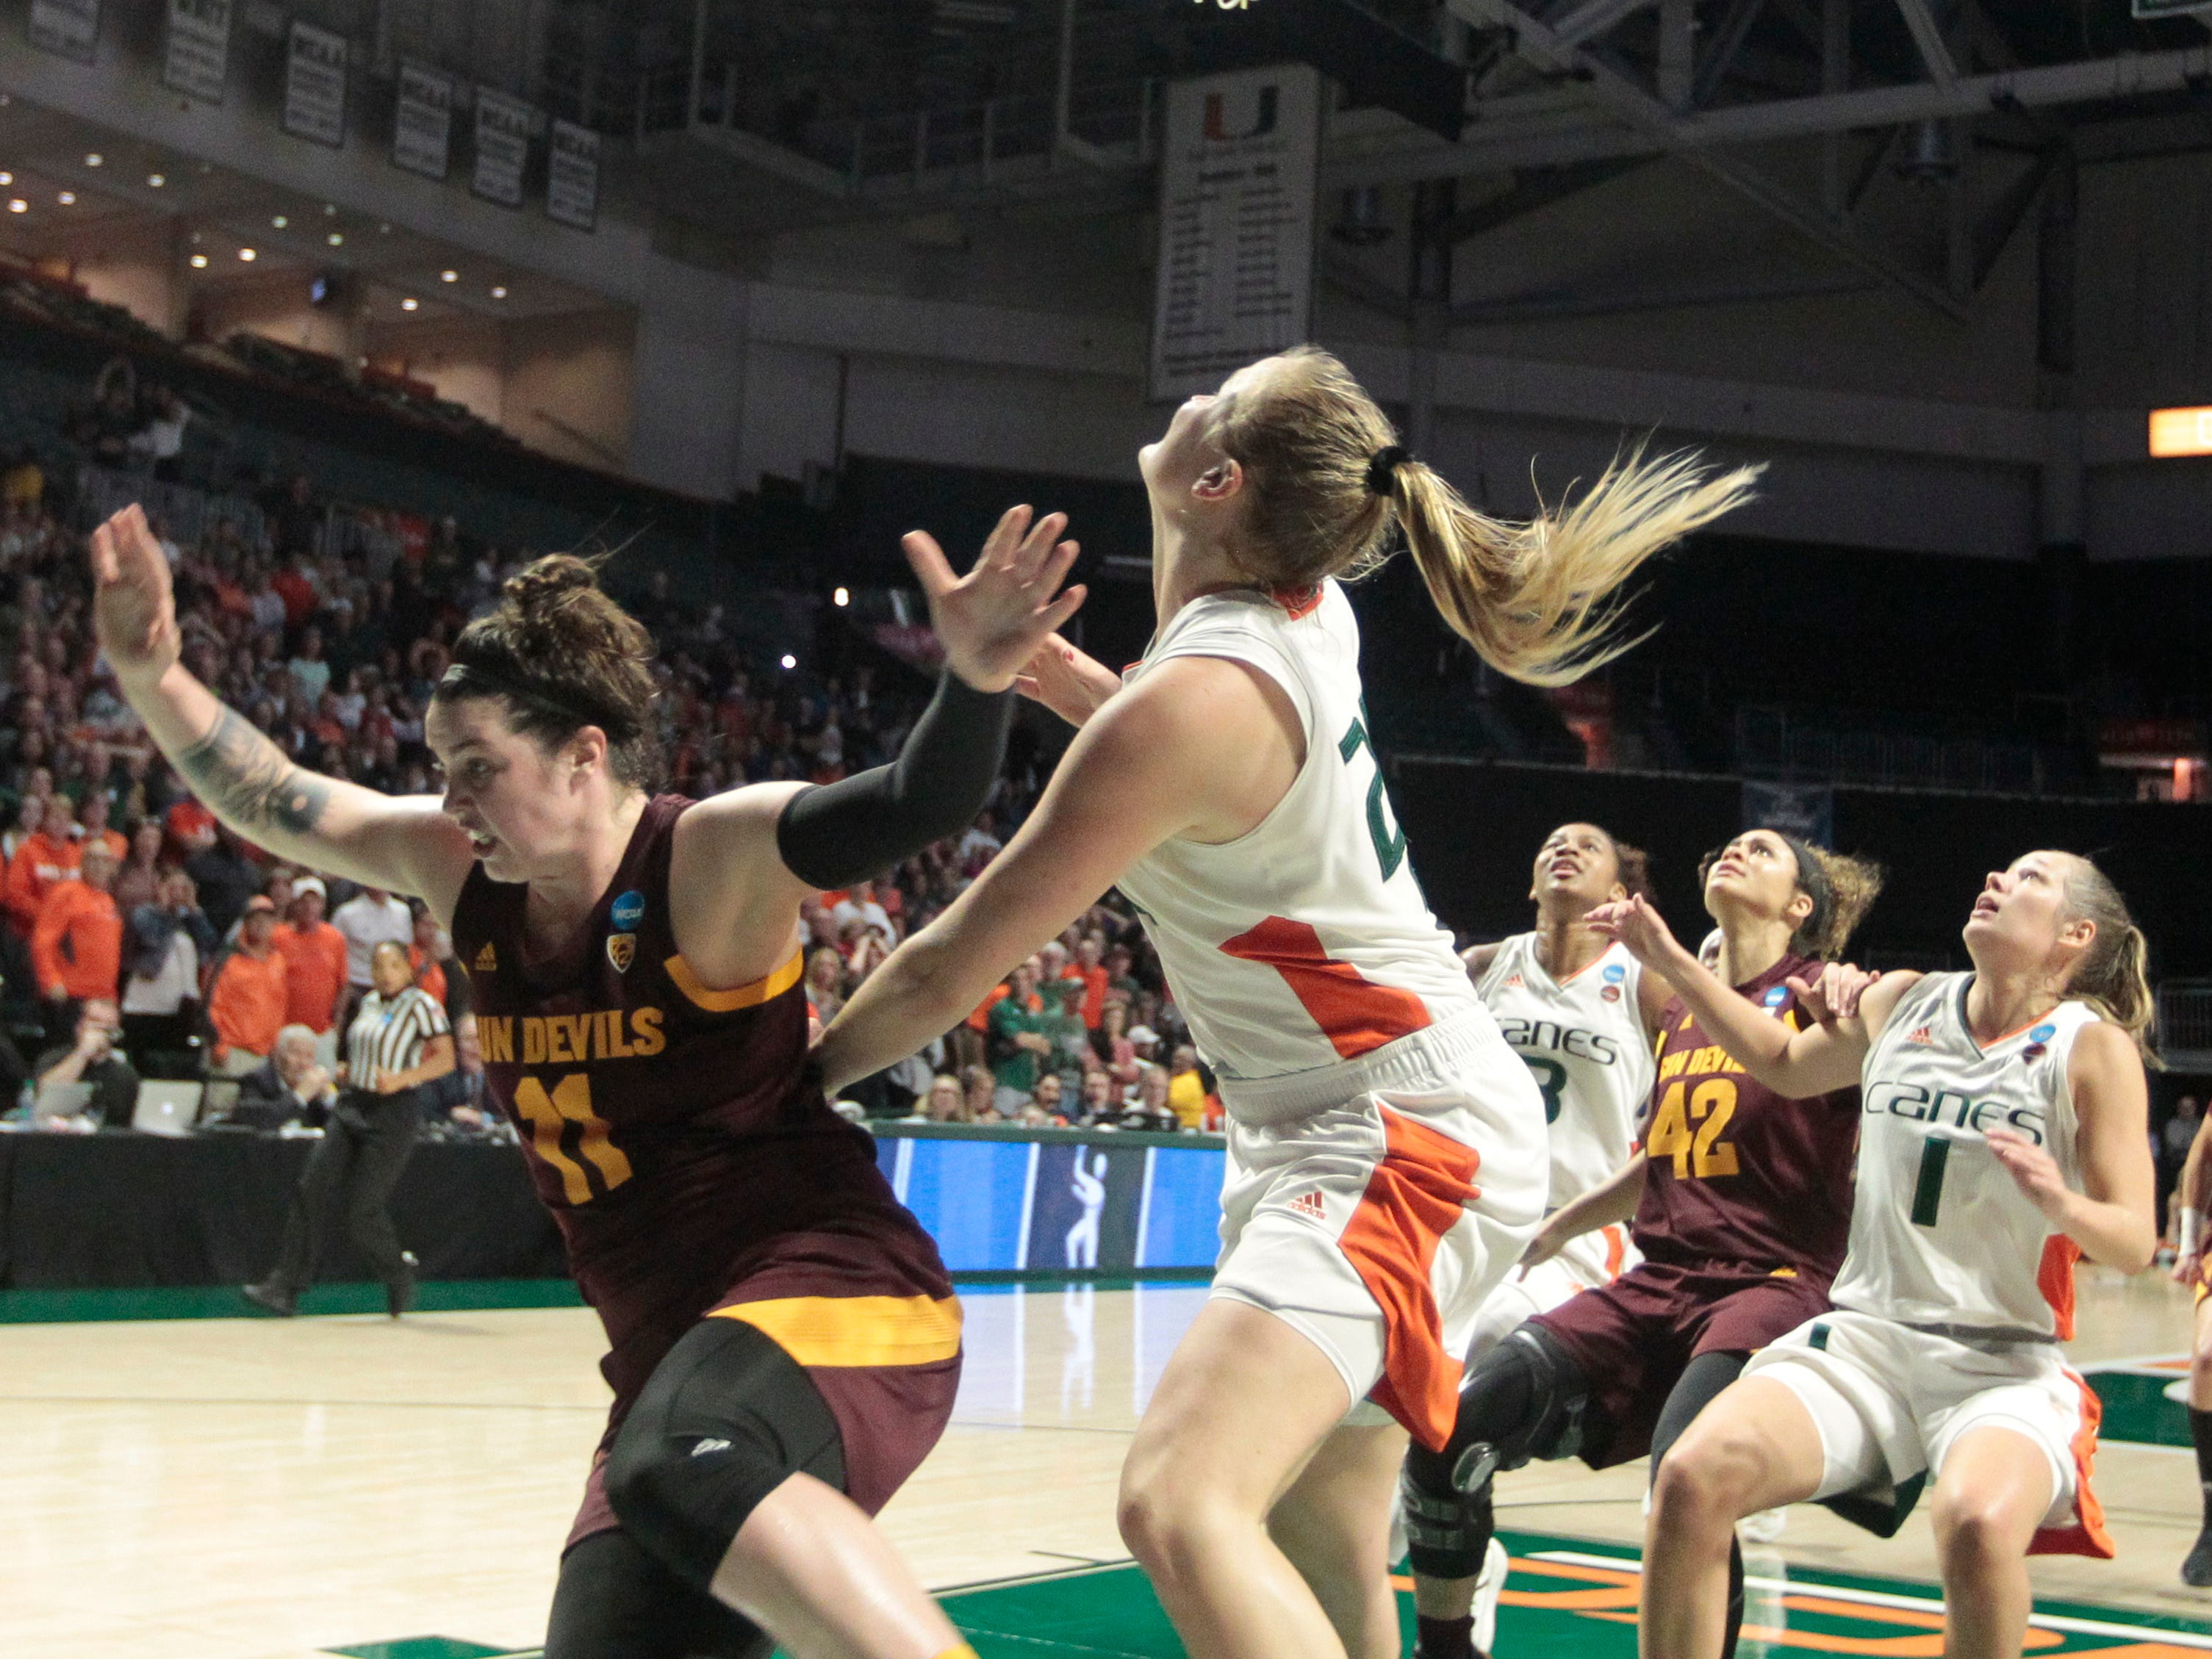 Arizona State's Robbi Ryan (11) is fouled by Miami's Emese Hof, right, as she attempts the go-ahead basket during a second round women's college basketball game in the NCAA Tournament, Sunday, March 24, 2019, in Coral Gables, Fla. Arizona State hit the free throws, and Arizona State won 57-55. (AP Photo/Luis M. Alvarez)